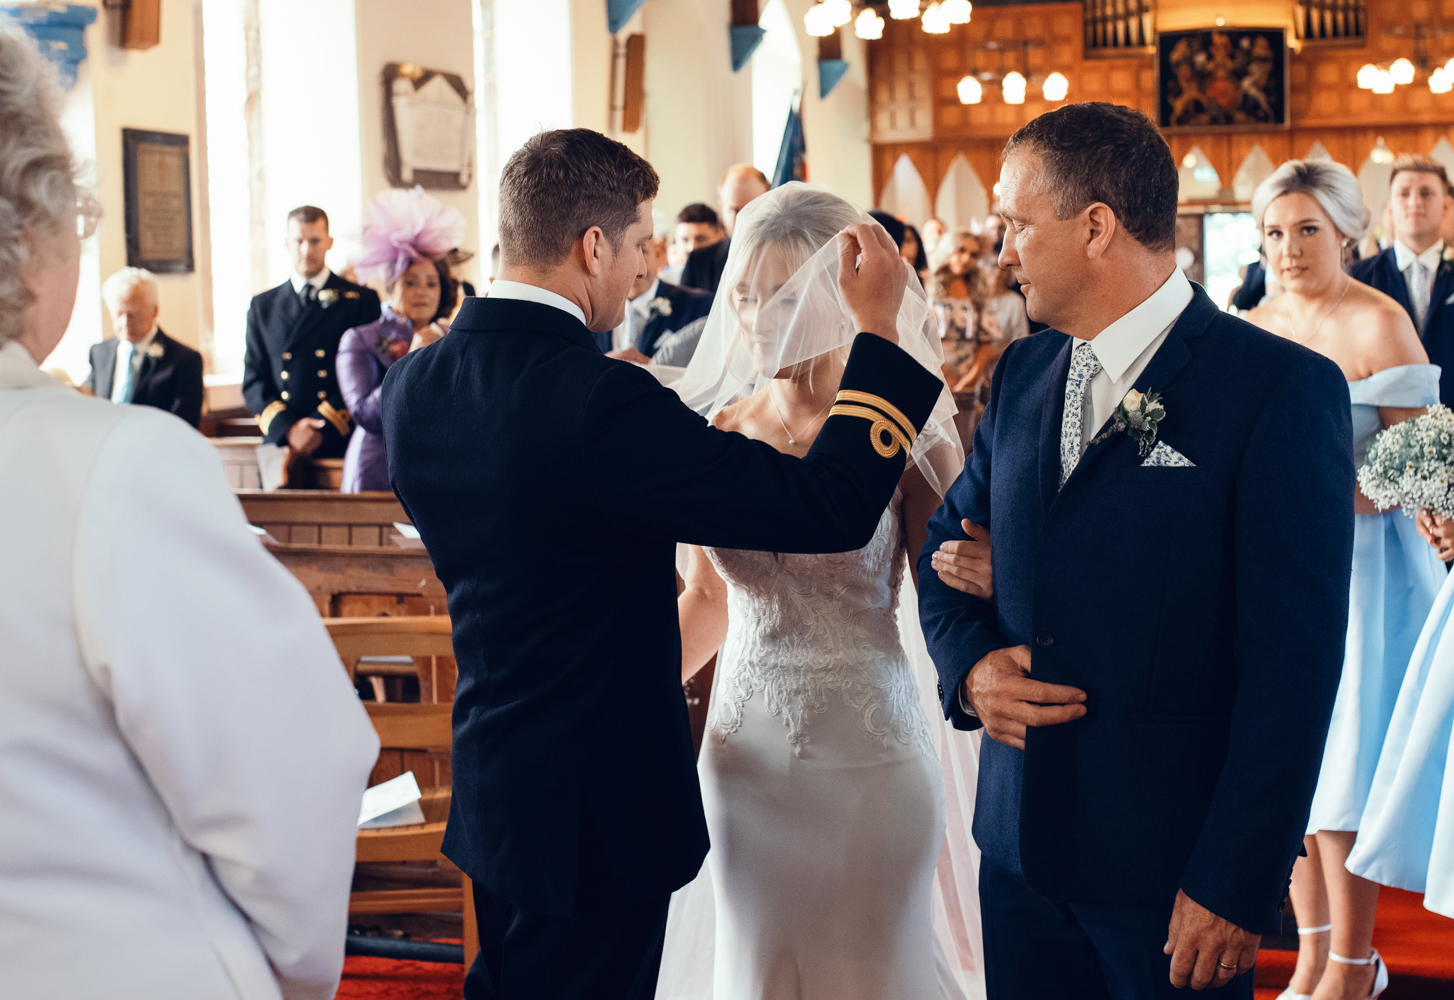 The groom removes the brides veil in church before the ceremony begins